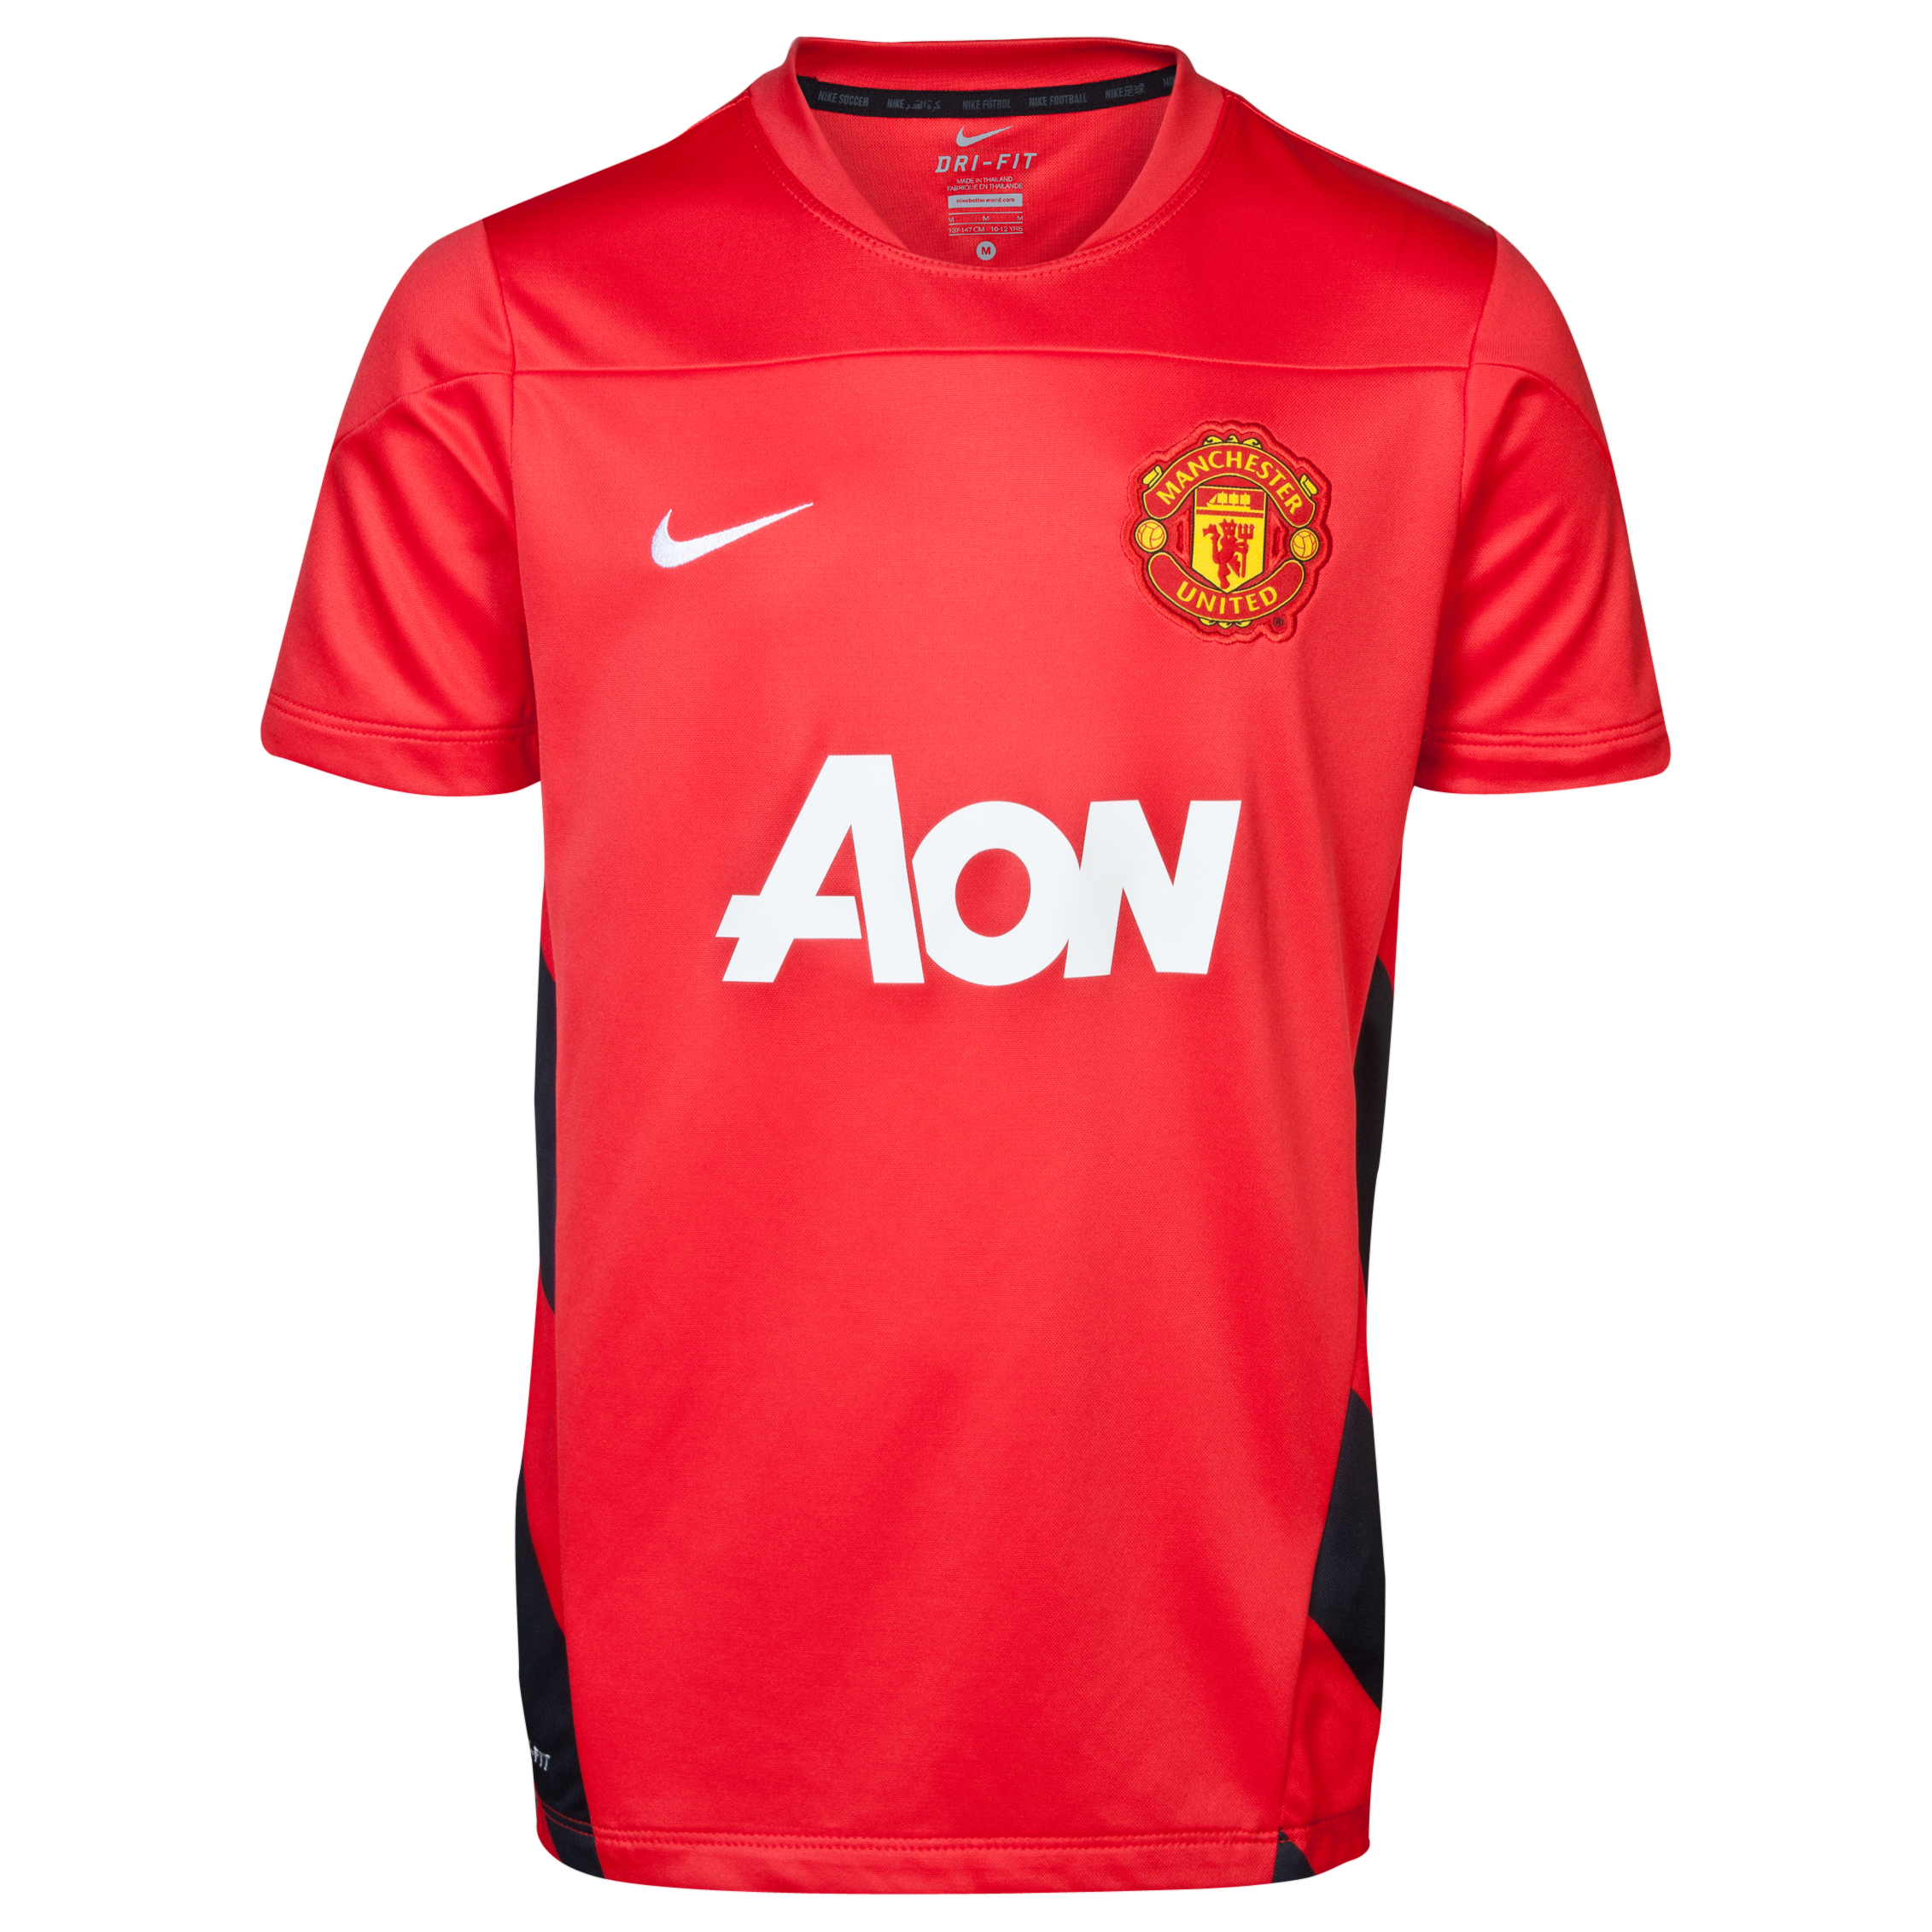 Manchester United UEFA Champions League Squad Short Sleeve Training Top - Challenge Red/Black/White - Kids Red